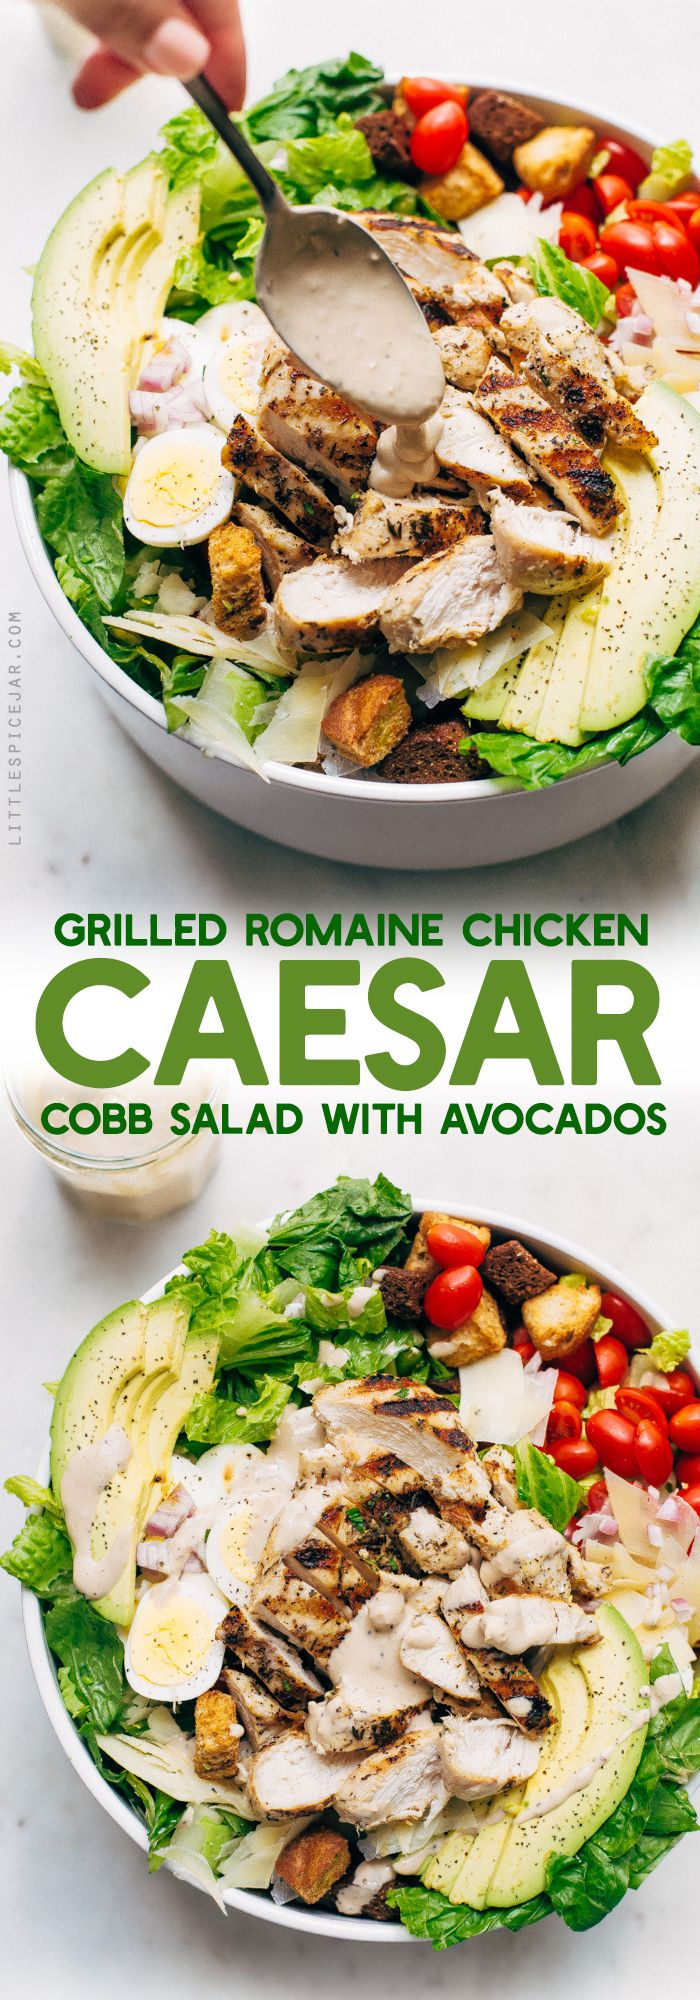 Grilled Romaine Chicken Caesar Cobb Salad - This salad combines all the things you love about a Cobb salad and all the things you love about a caesar salad! We're grilling the chicken and the romaine for more added flavor! #caesarsalad #caesarcobbsalad #cobbsalad #salad | LIttlespicejar.com